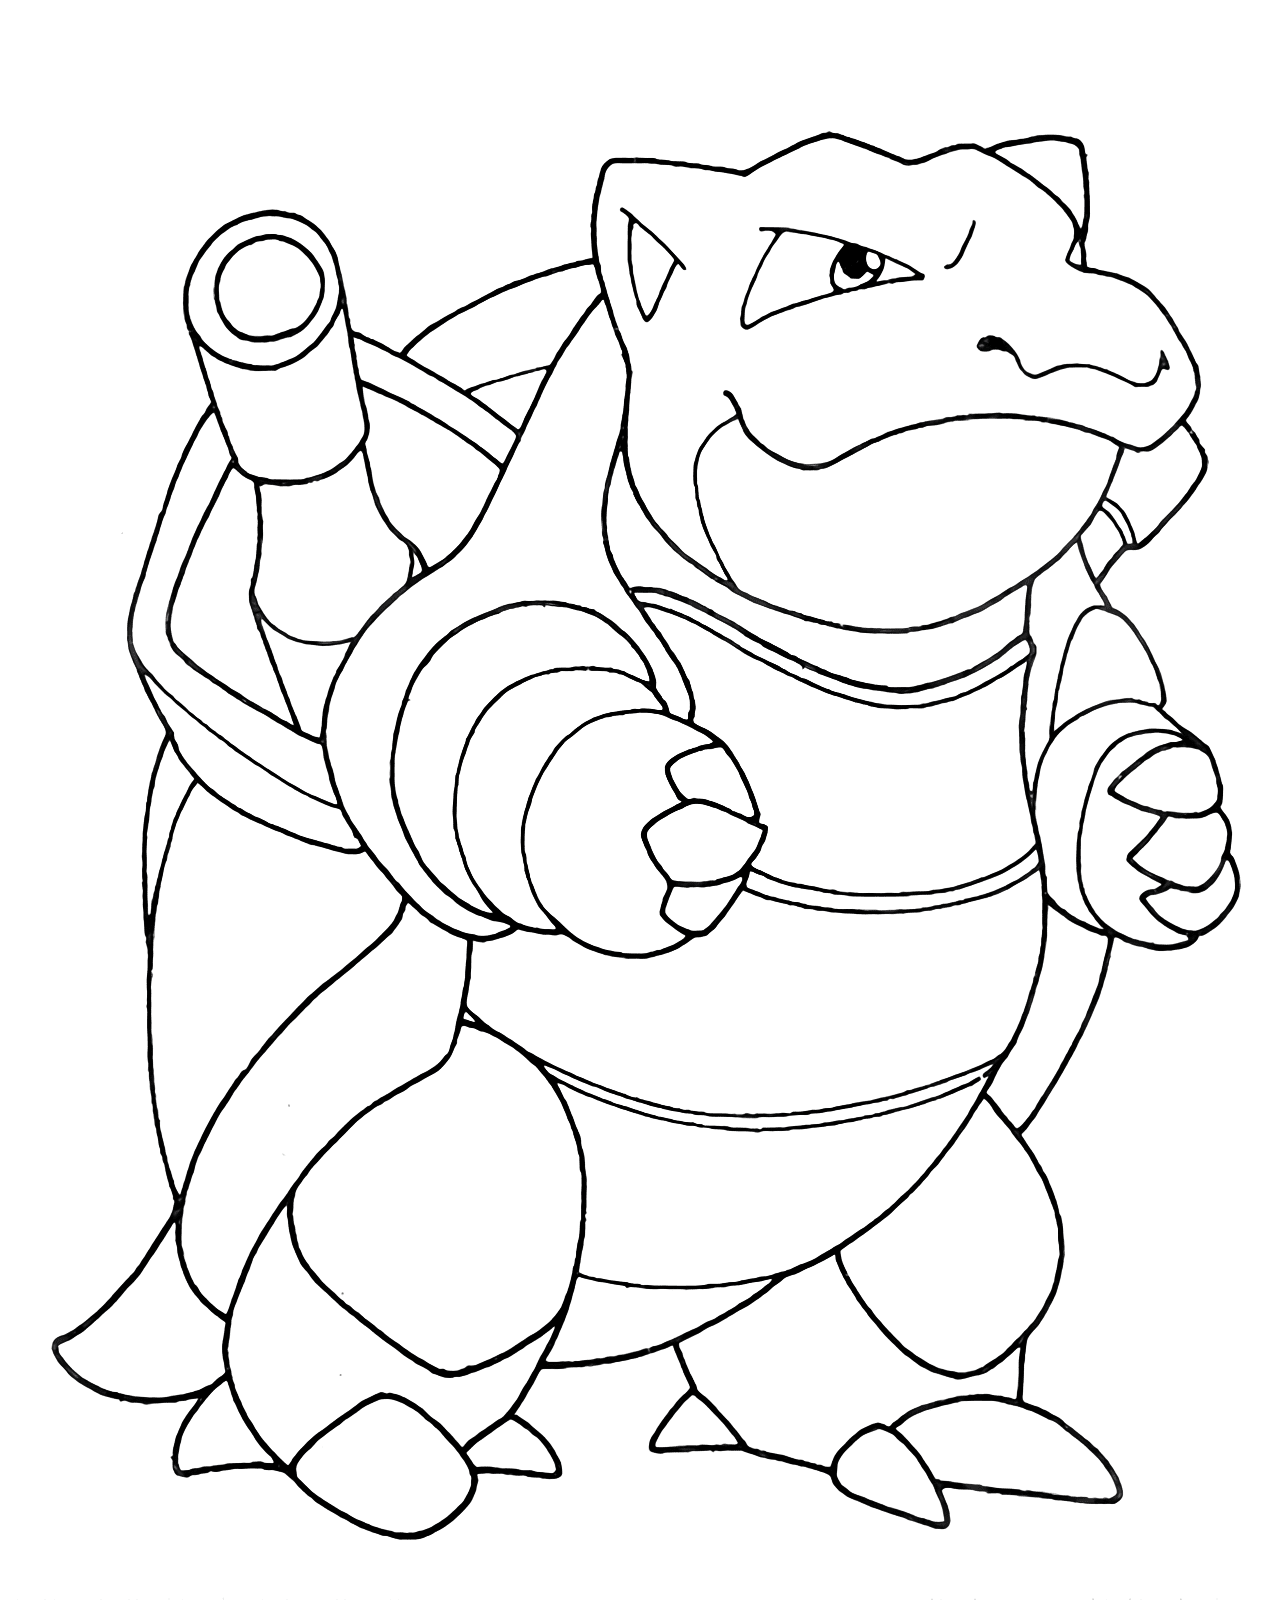 Free Blastoise Coloring Pages Collection Download These Pokemon Pictures To Print And Color With Your Kids They Would Have Fun Their